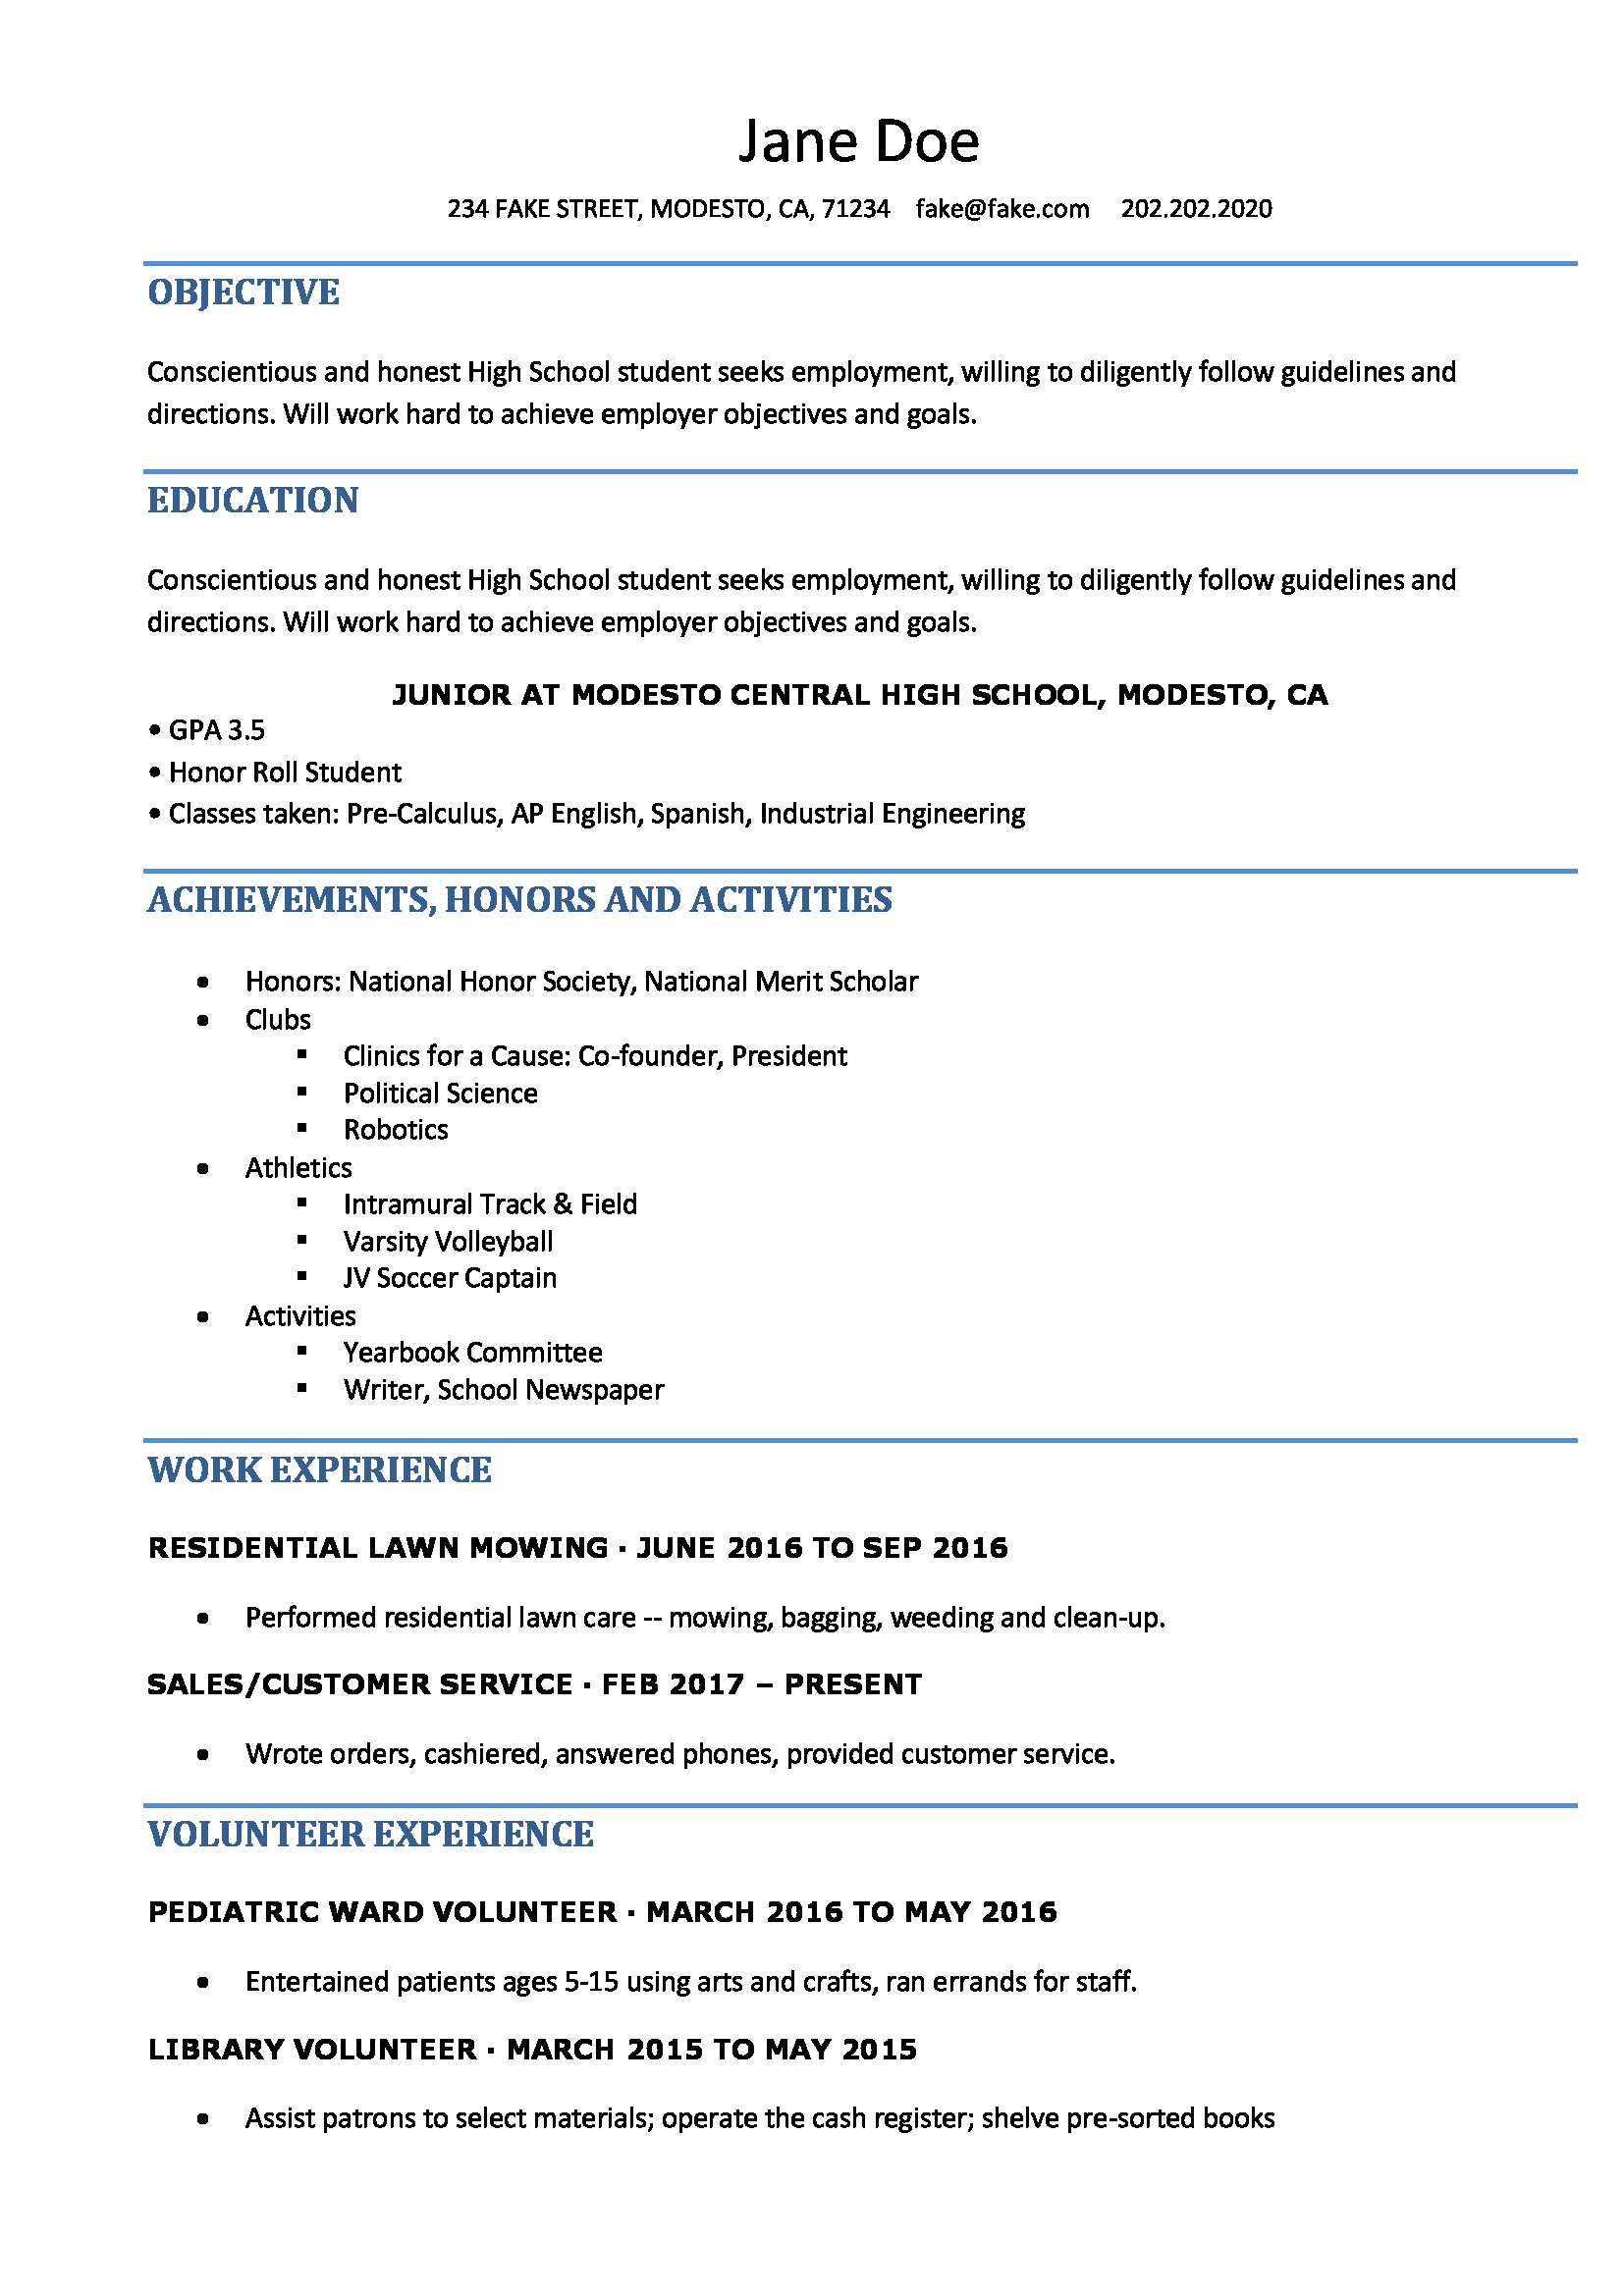 Resume Template High School High School 3 Resume Format High School Resume Template High